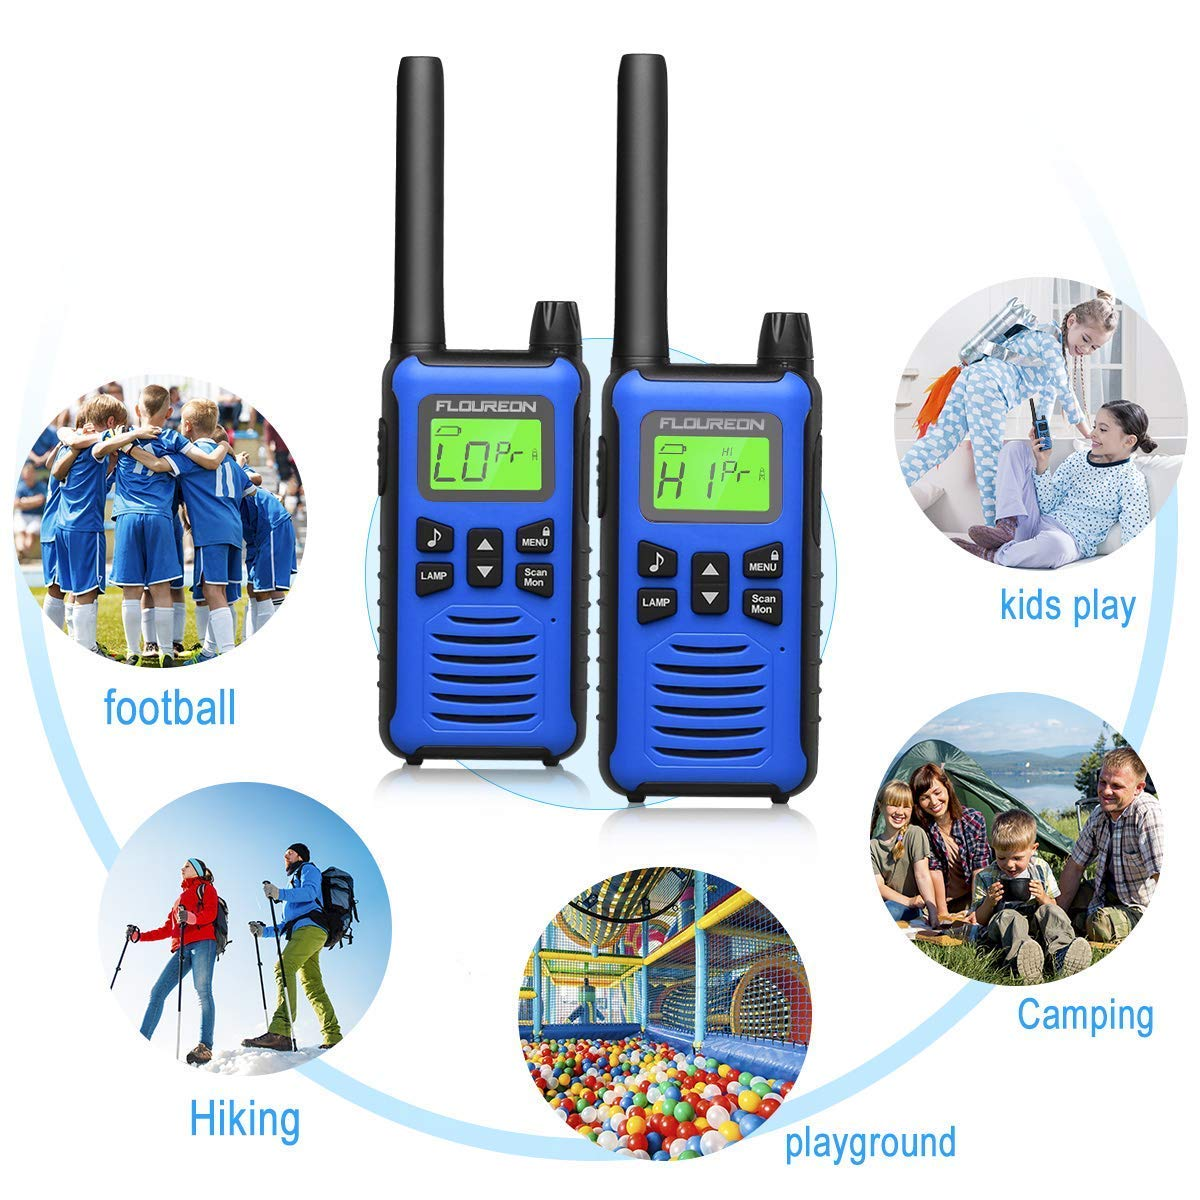 2 Pack Walkie Talkies for Kids FLOUREON Long Range Two Way Radio 22 Channel 3000M (MAX 5000M) USB Cable Charging Walkie Talkies for Outdoor Adventures Camping Hiking(Blue)